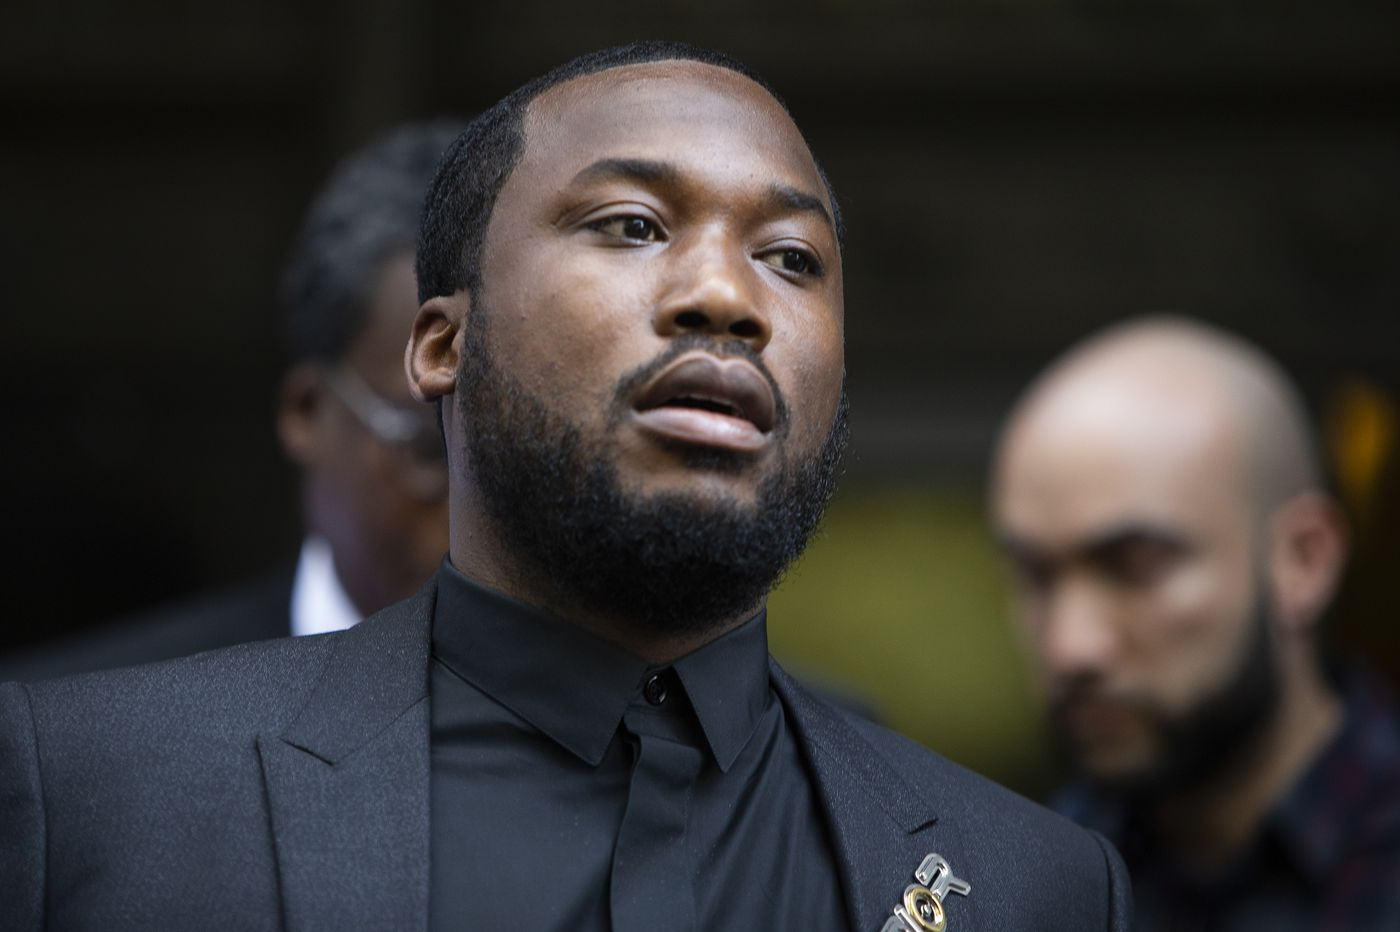 Meek Mill's decade of legal woes: Prison, probation, and a clash with a judge